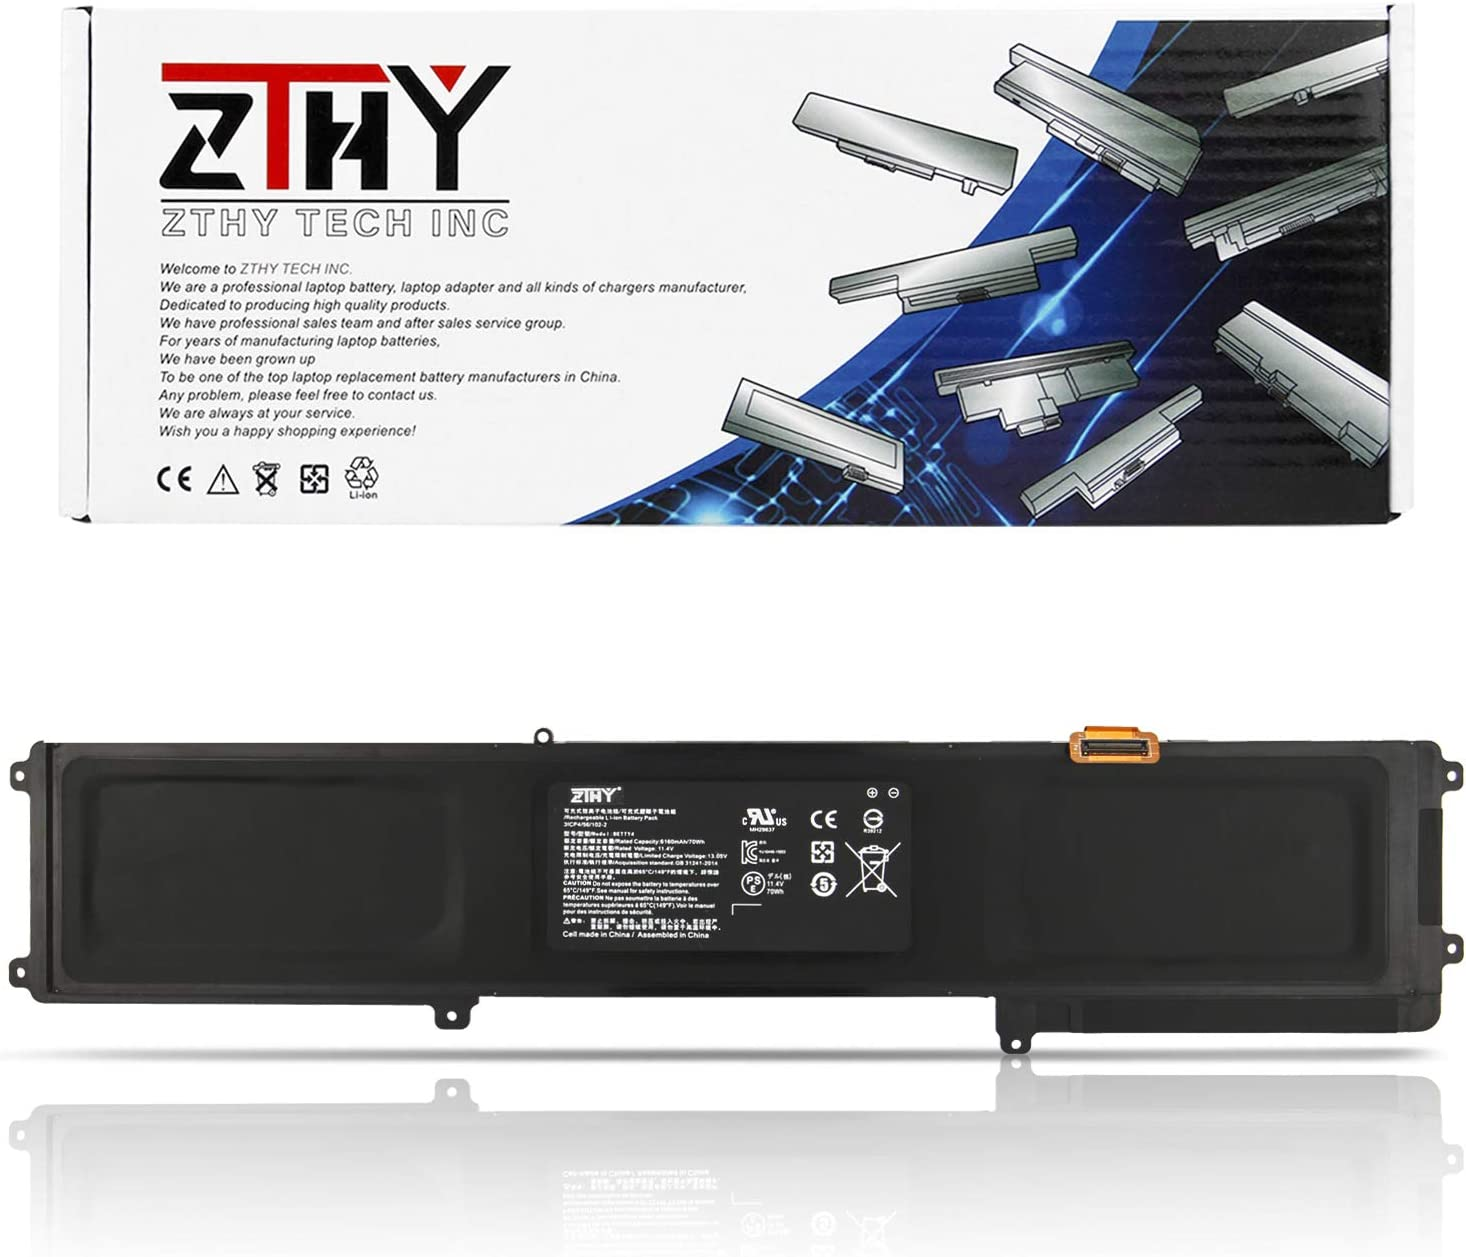 "ZTHY New BETTY4 Laptop Battery Replacement for Razer Blade 2016 14"" V2 GTX 1060 RZ09-0165 RZ09-0195 RZ09-01952E72 RZ09-01953E72 RZ09-01953E71 RZ09-01953W52 RZ09-01652E21 RZ09-01952E31 11.4V 70Wh"